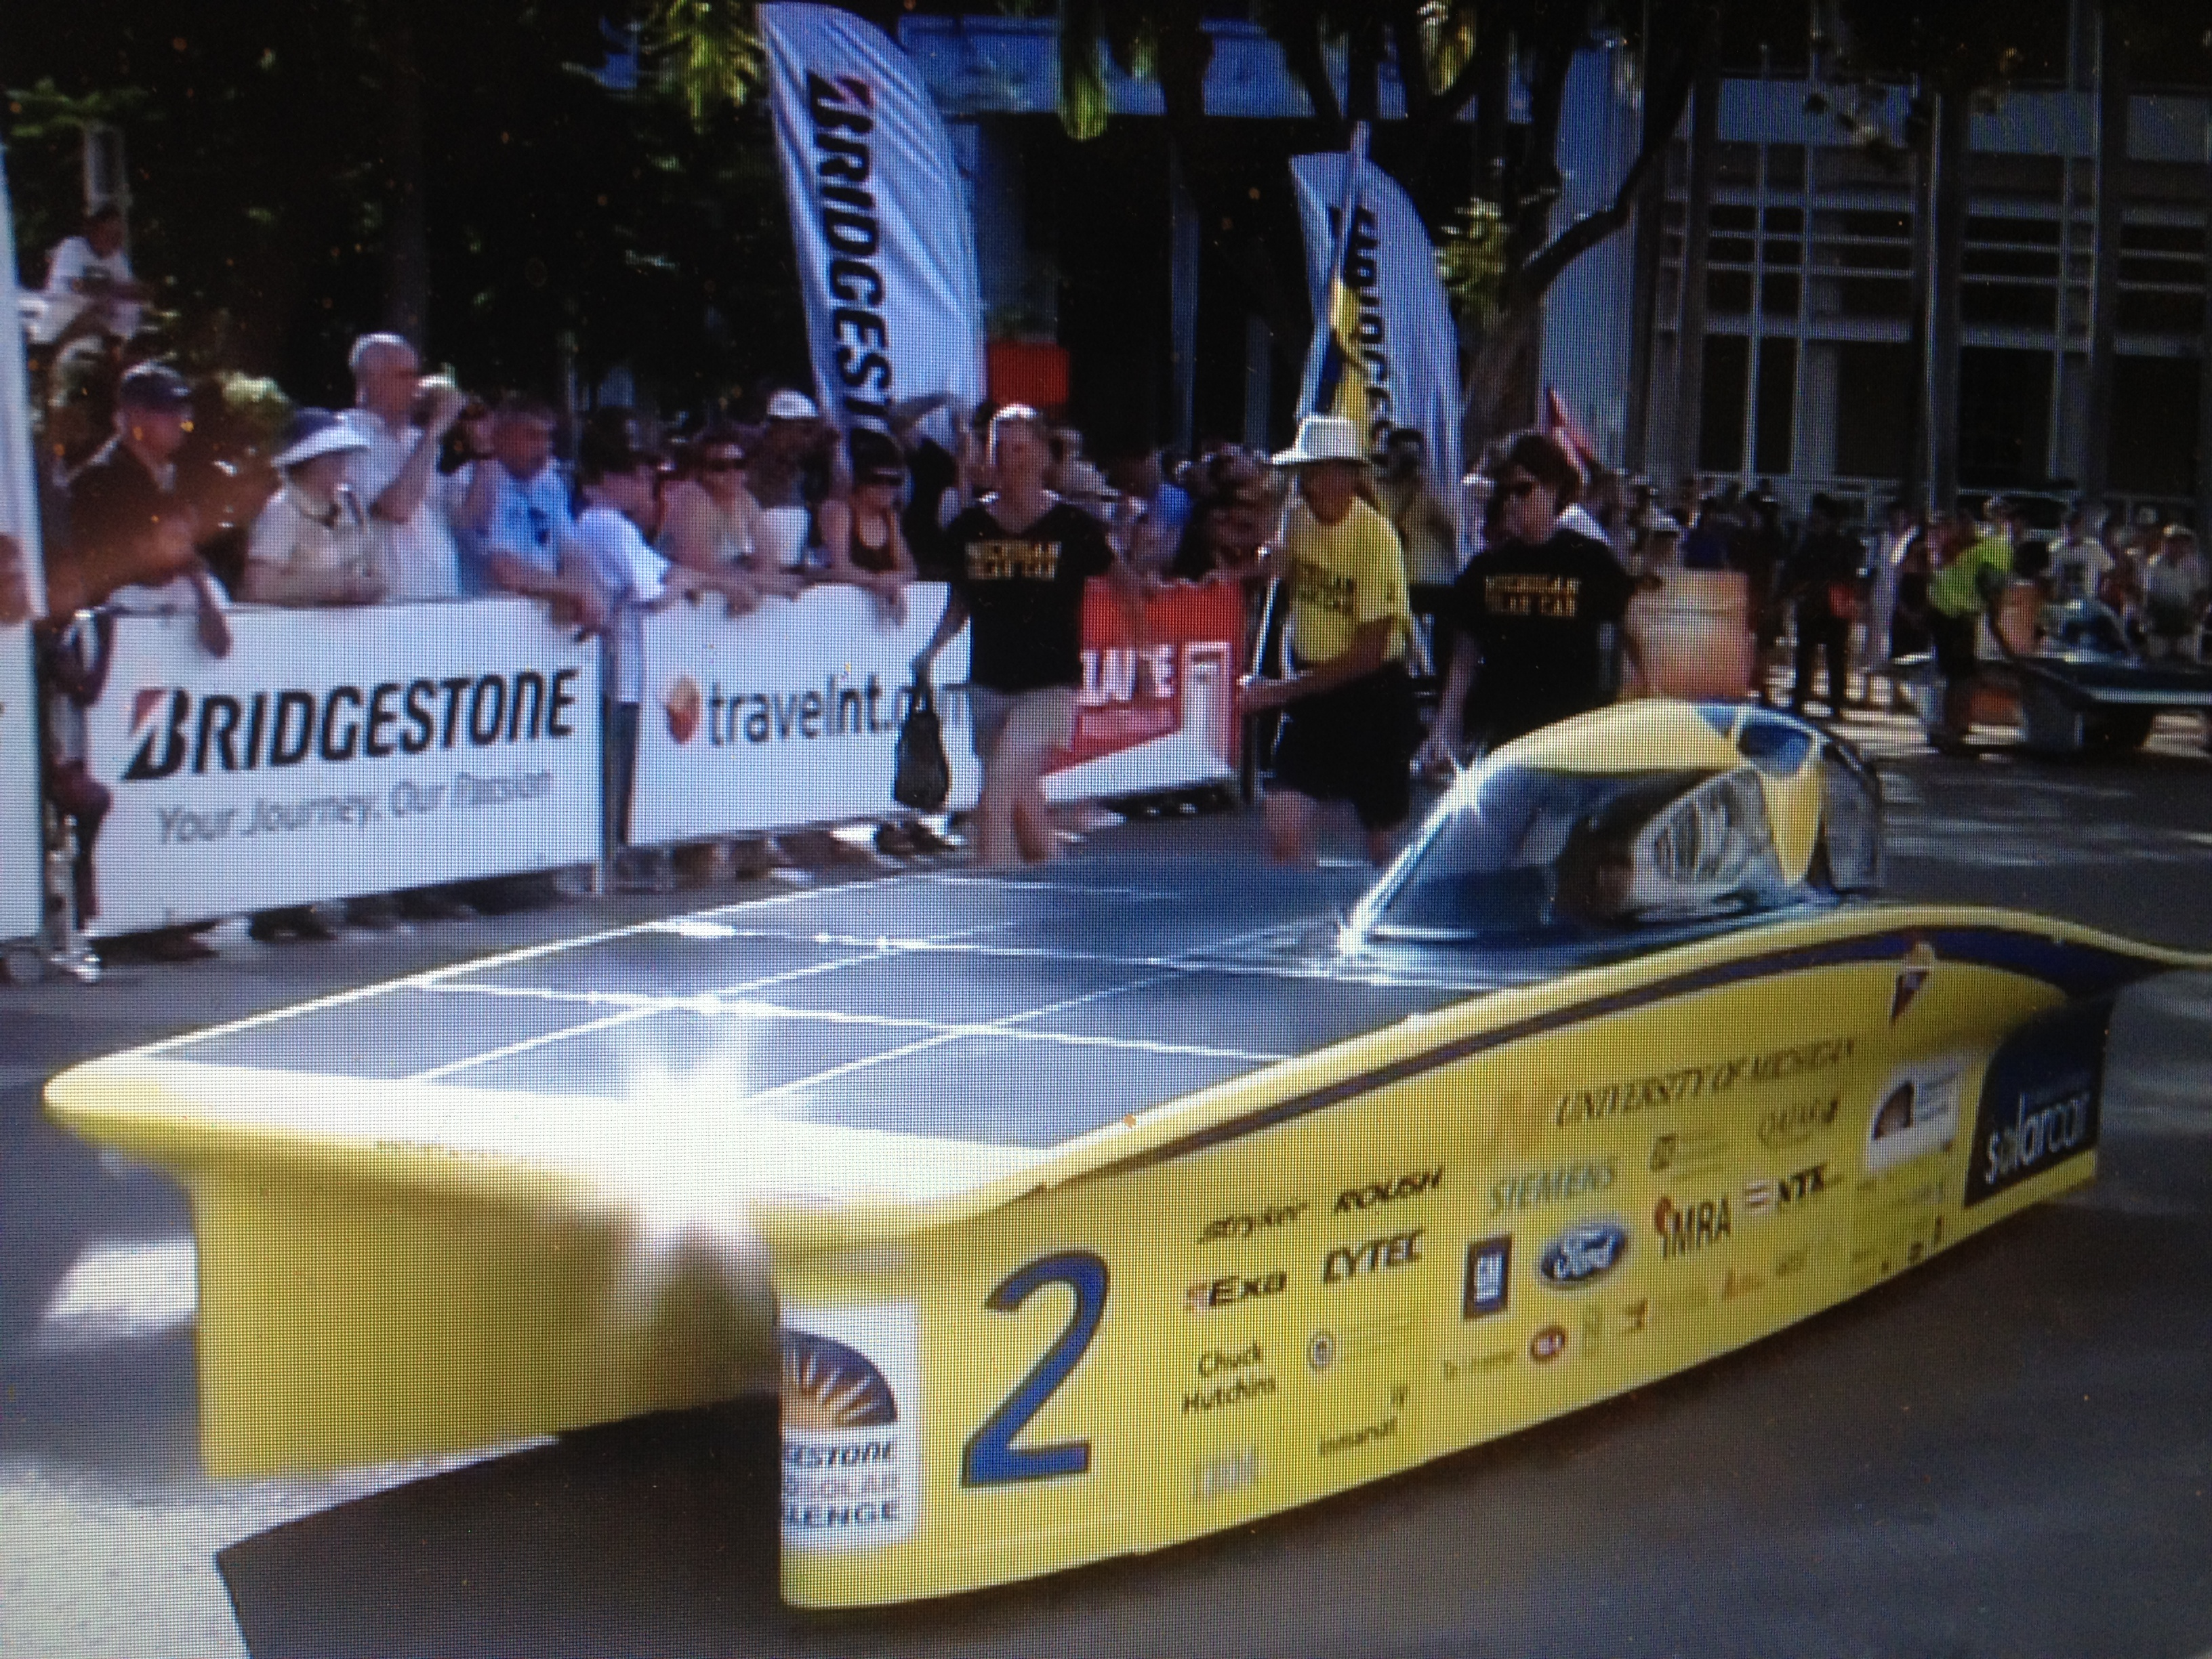 WSC2013-University of Michigan (USA)'s solar car